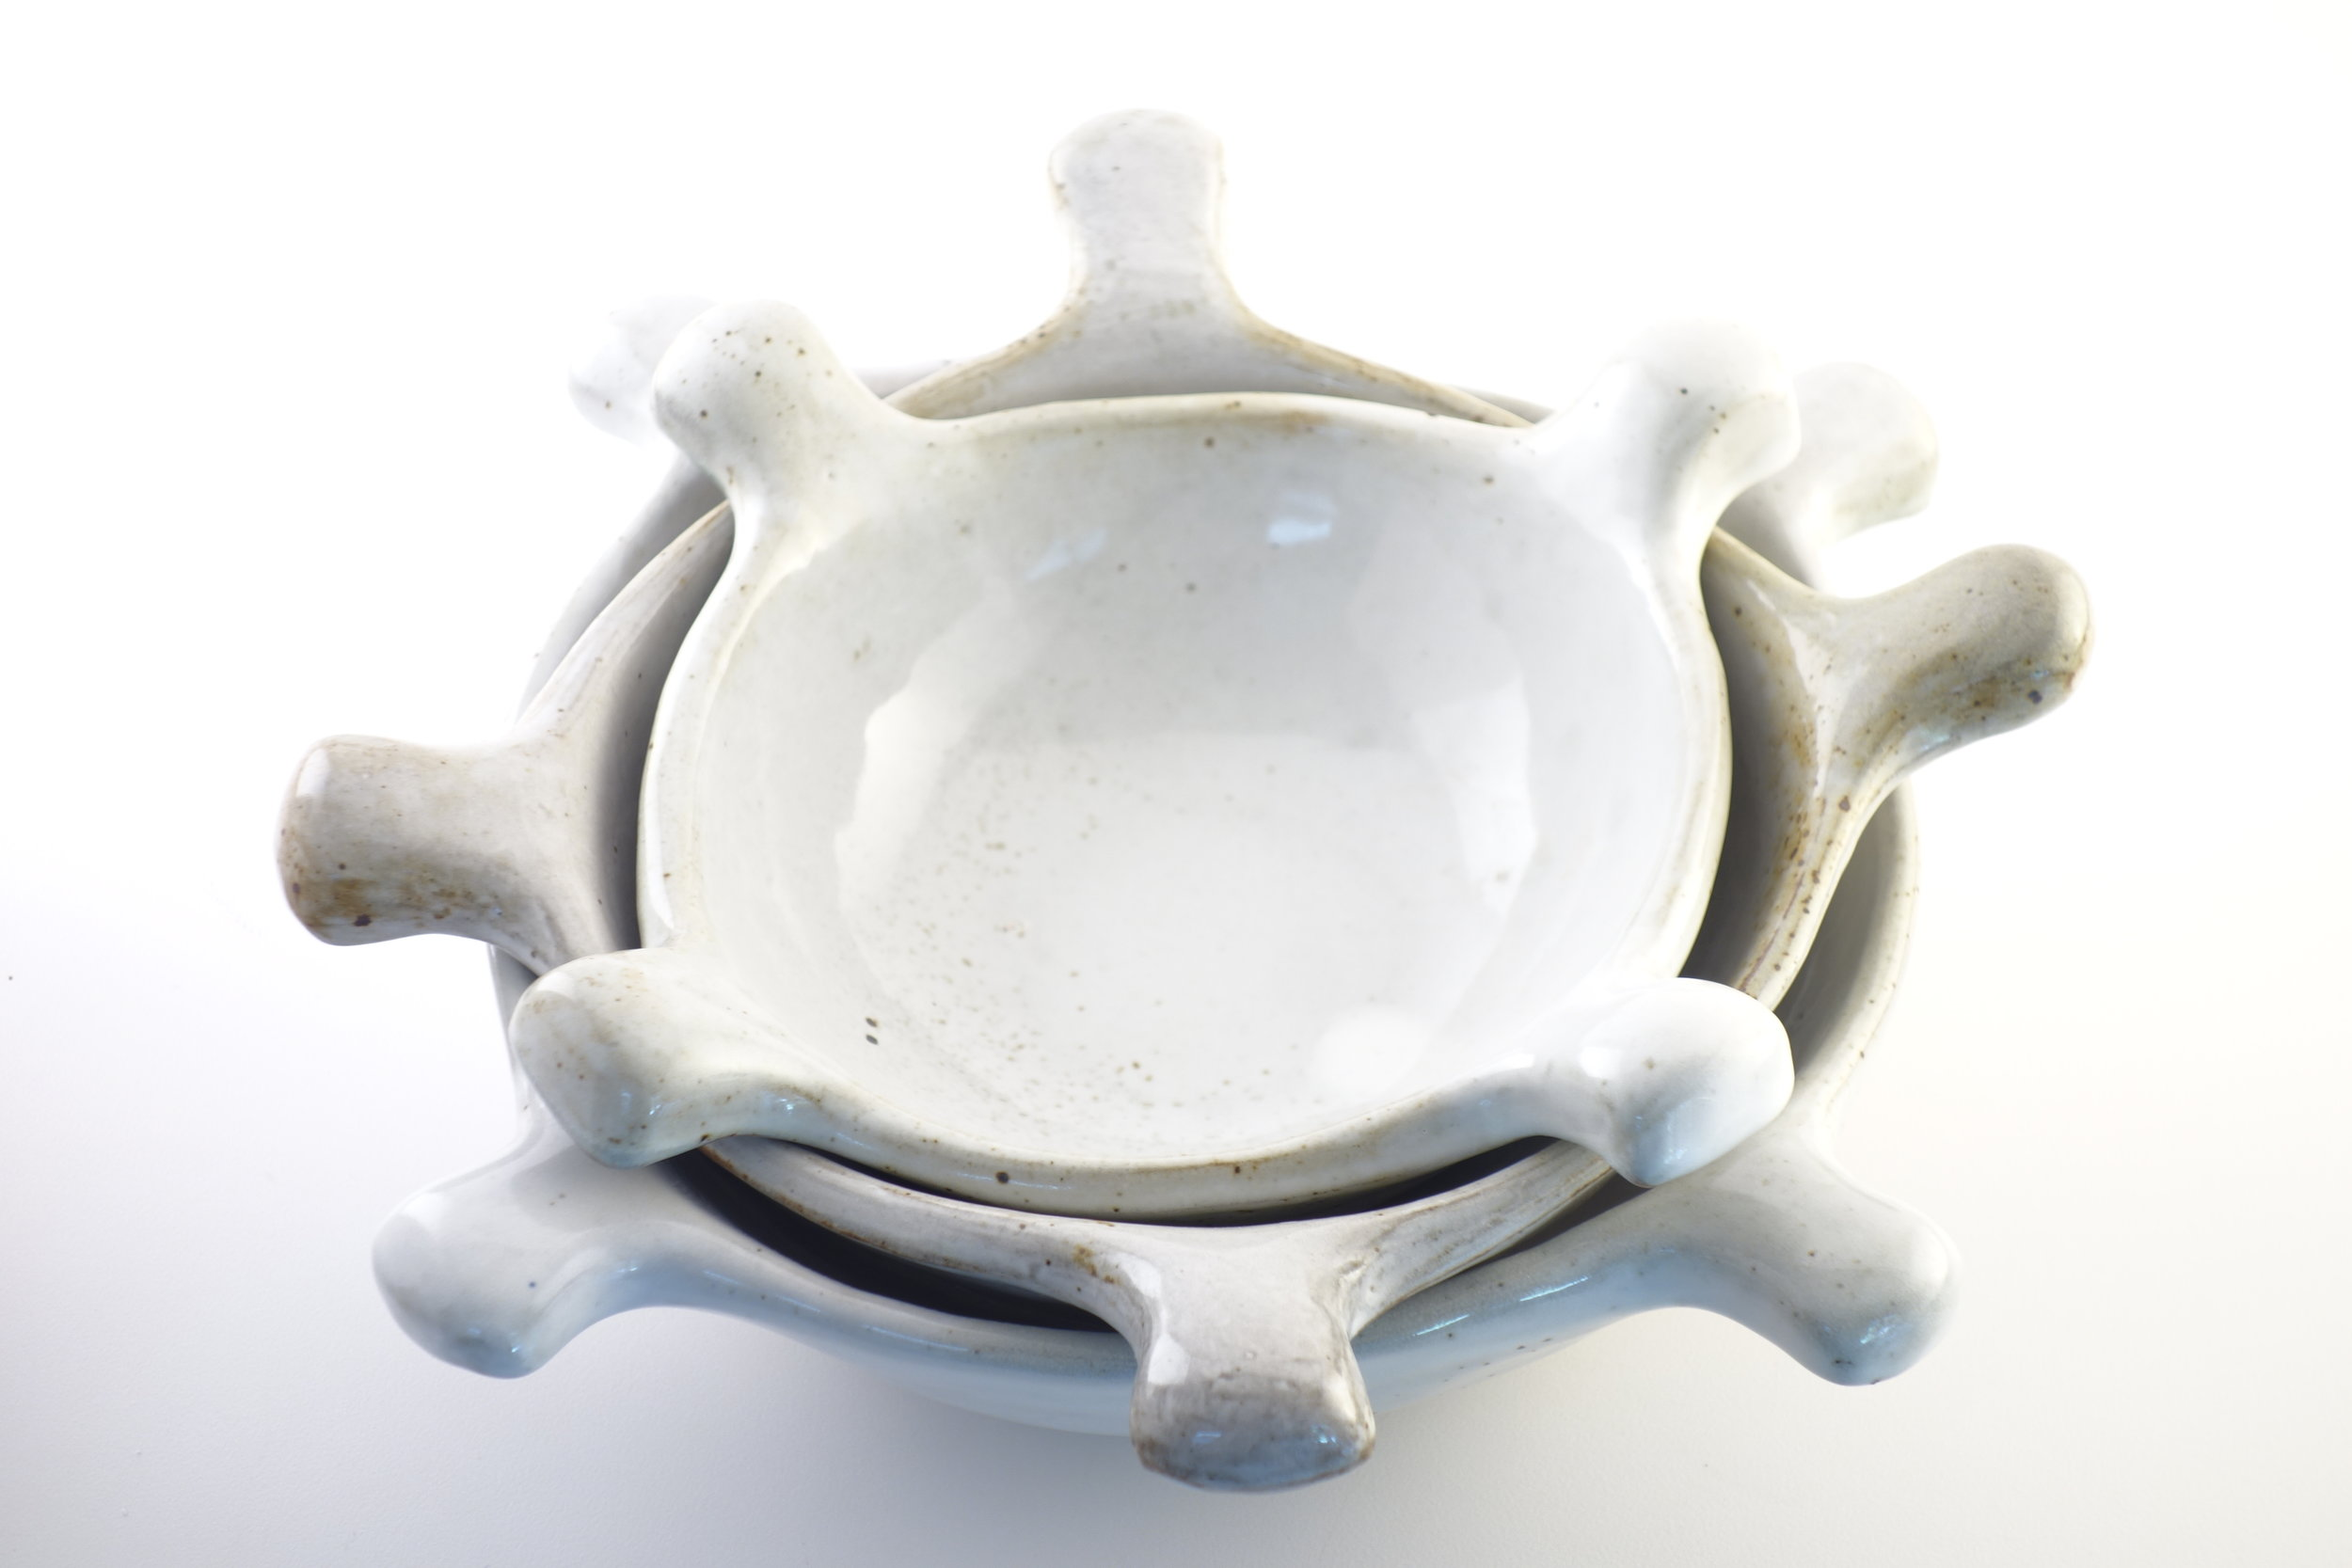 White Zinnia Stack   Three nesting bowls that mimic natures geometry. Stands alone as a sculptural form or opens on the table to serve food.  $200